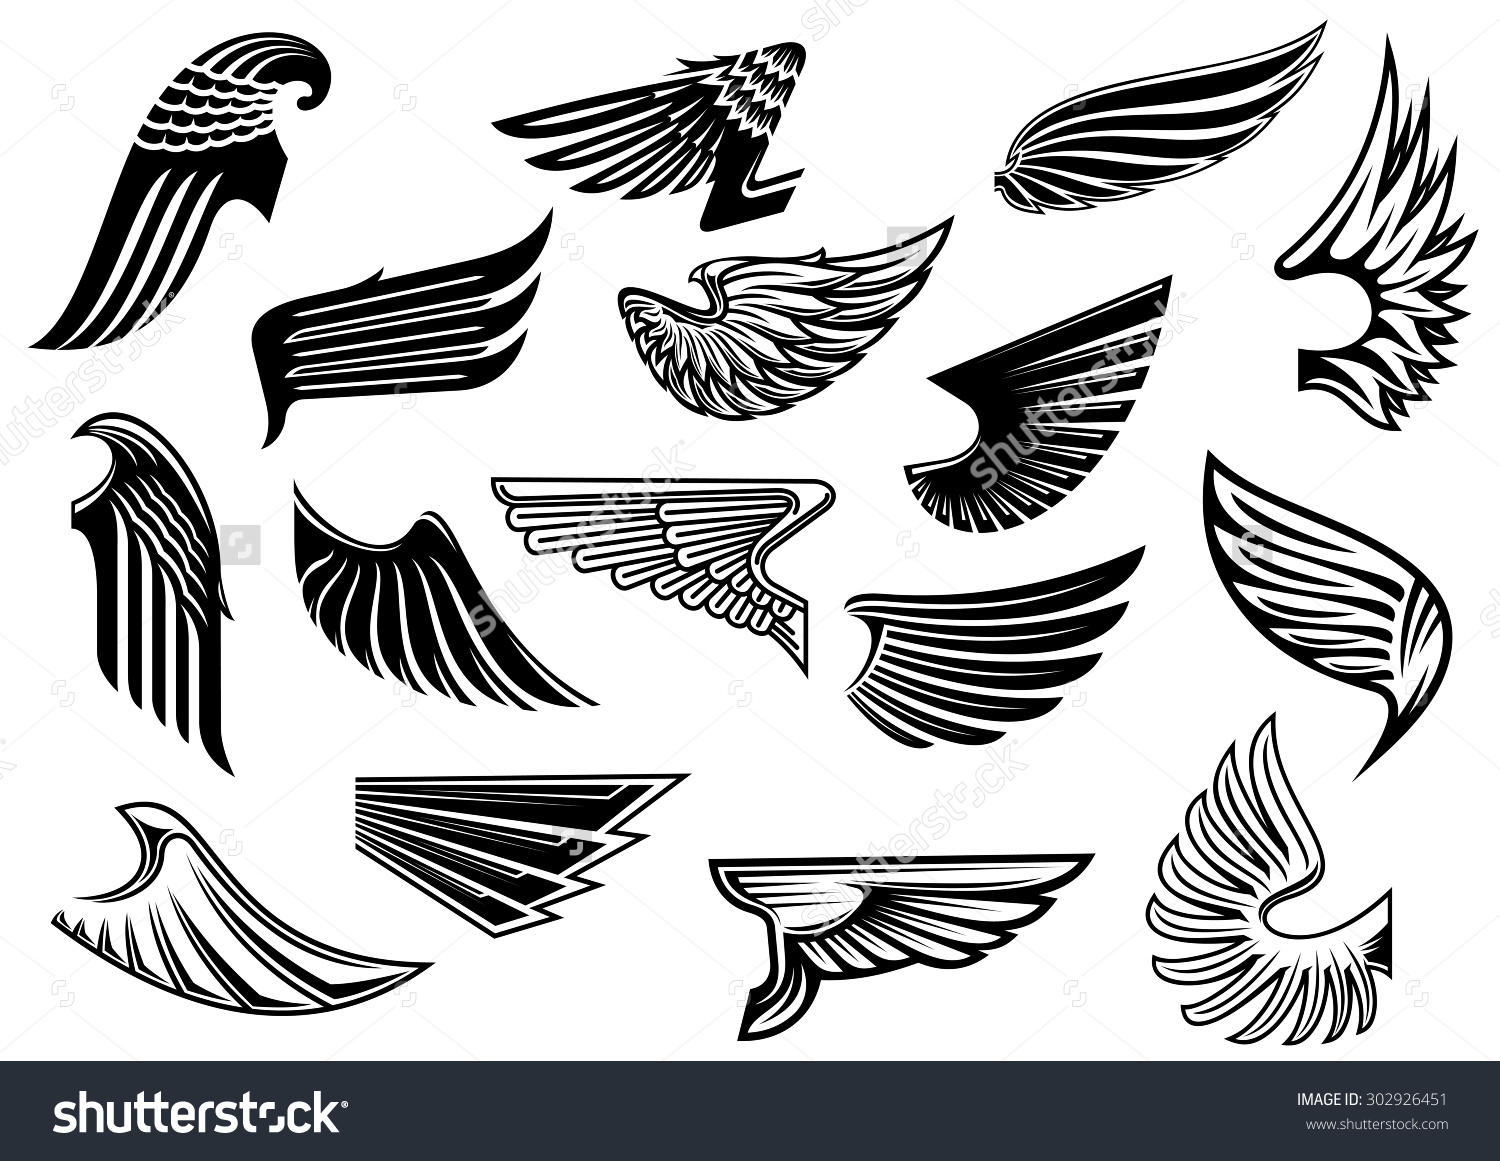 Vintage Isolated Heraldic Wings Set Detailed Stock Vector.